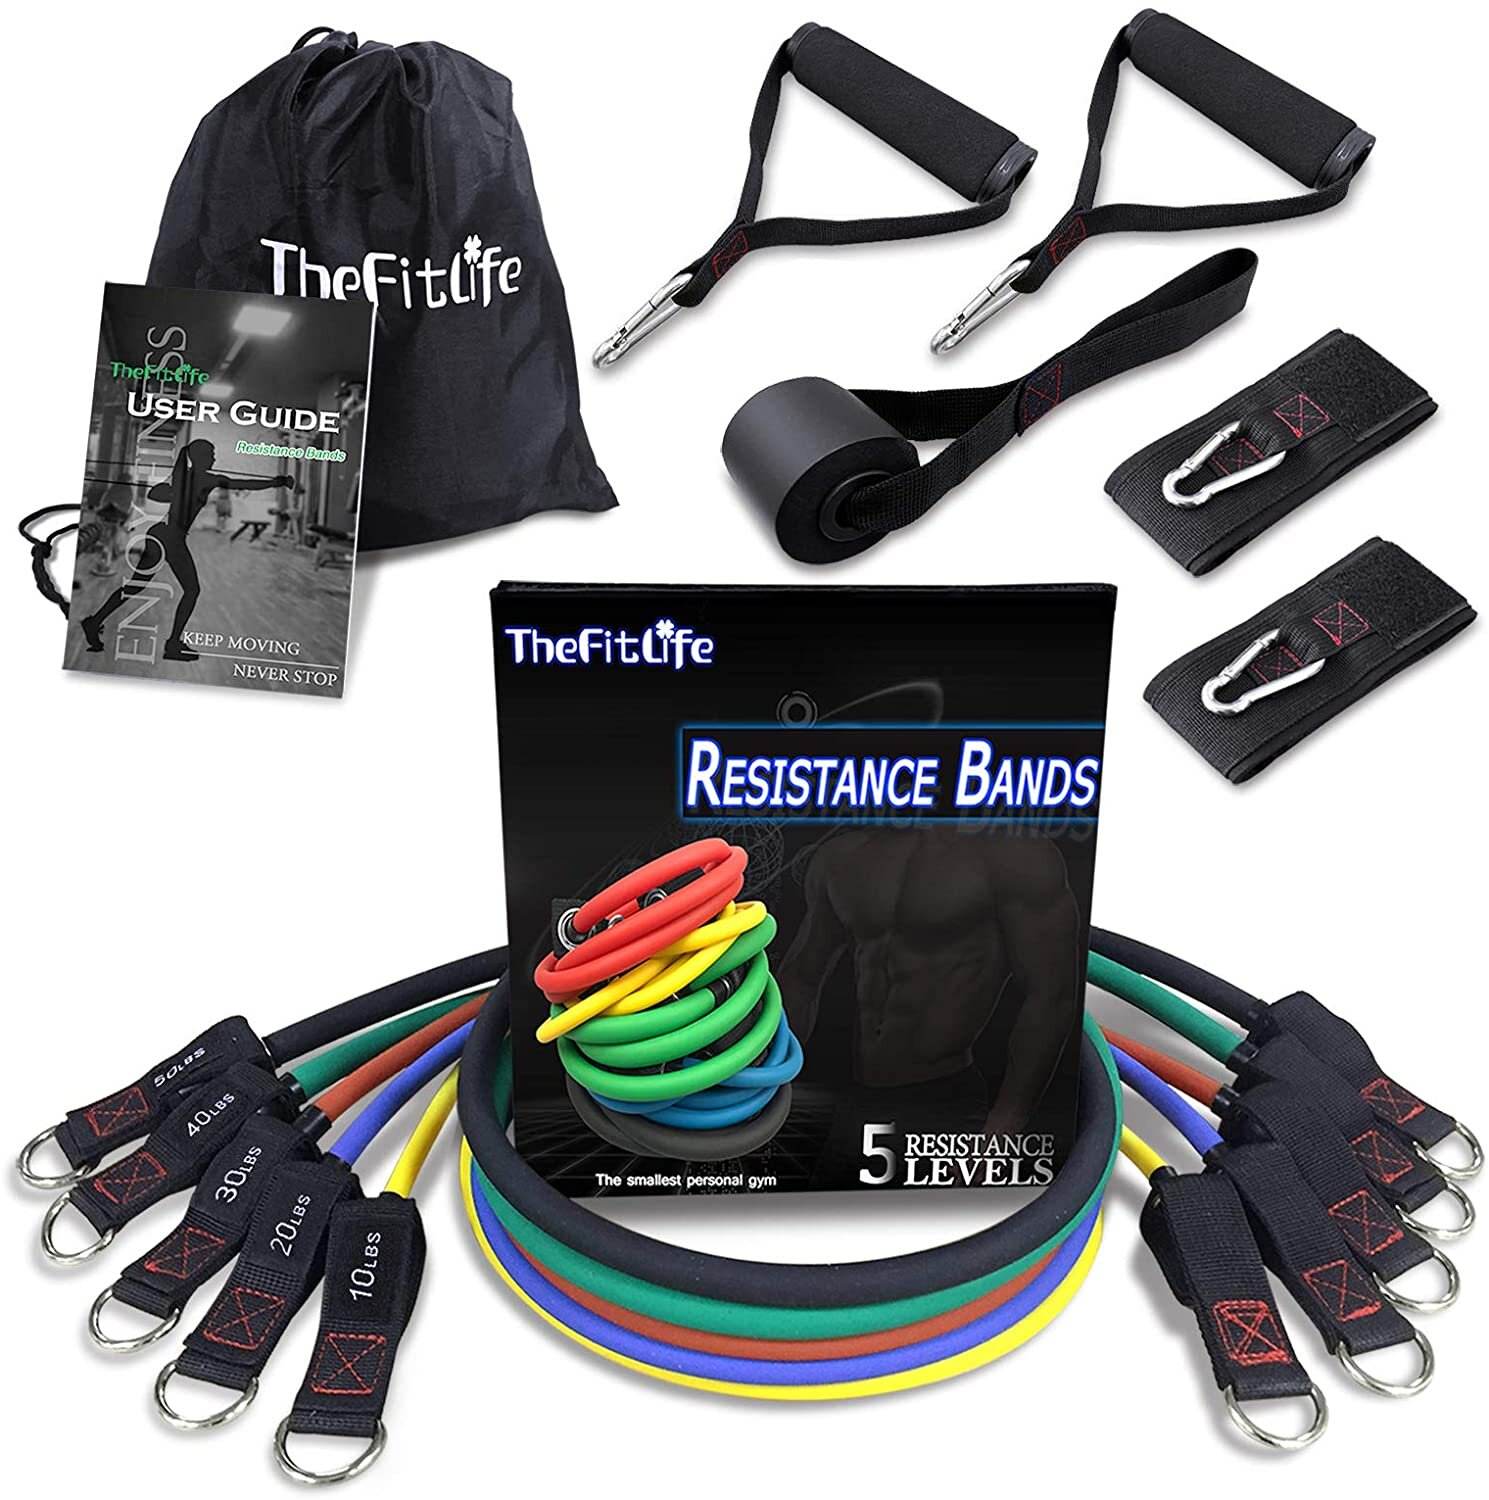 TheFitLife Bands Set.jpg